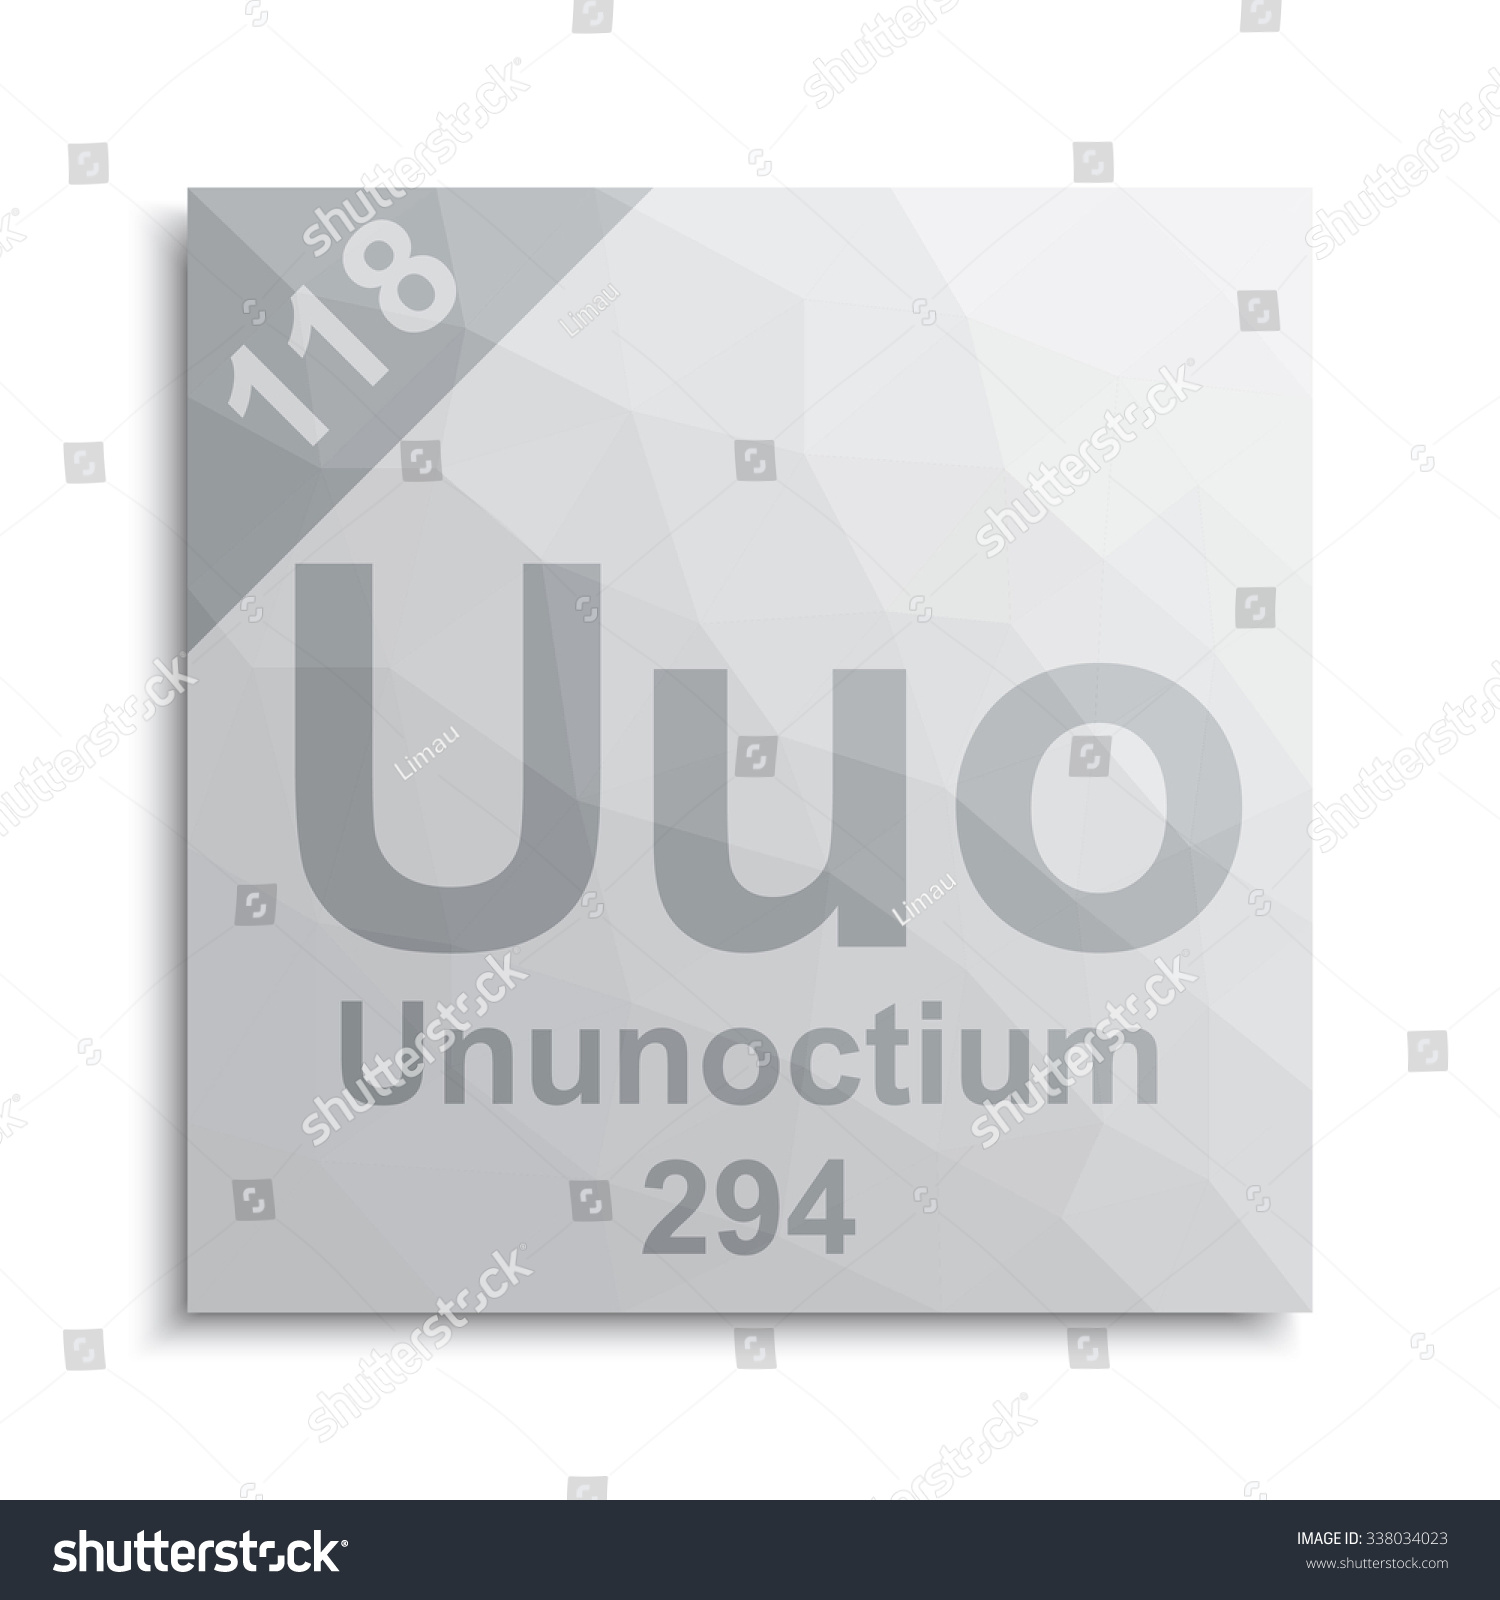 Ununoctium element periodic table stock vector 338034023 shutterstock urtaz Images